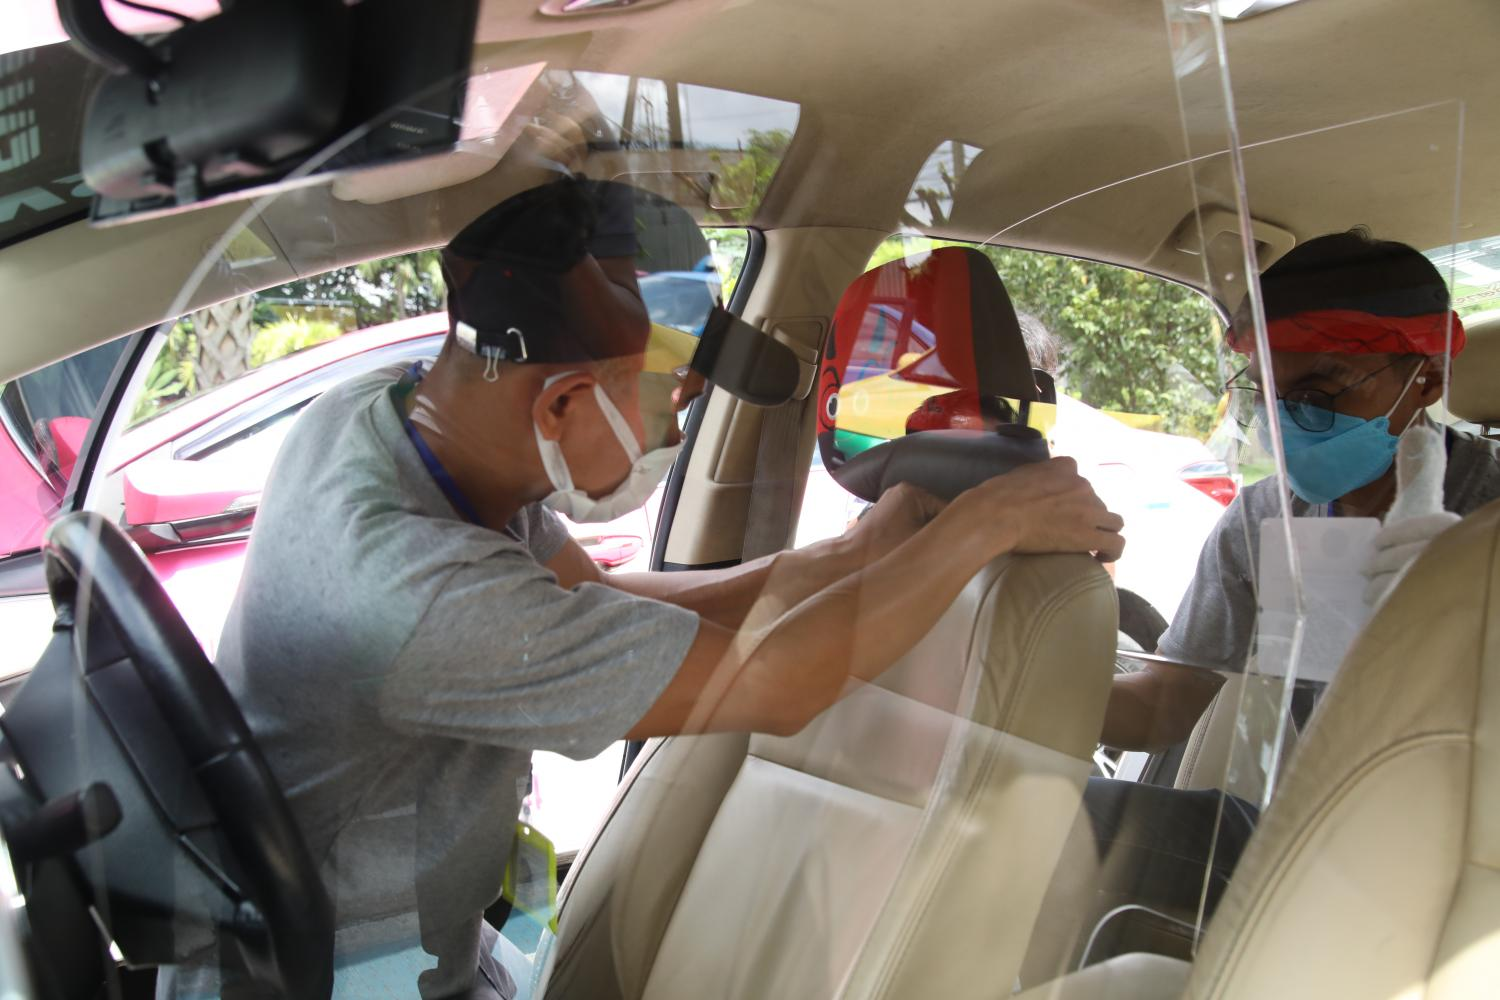 Taxis fitted with safety partitions